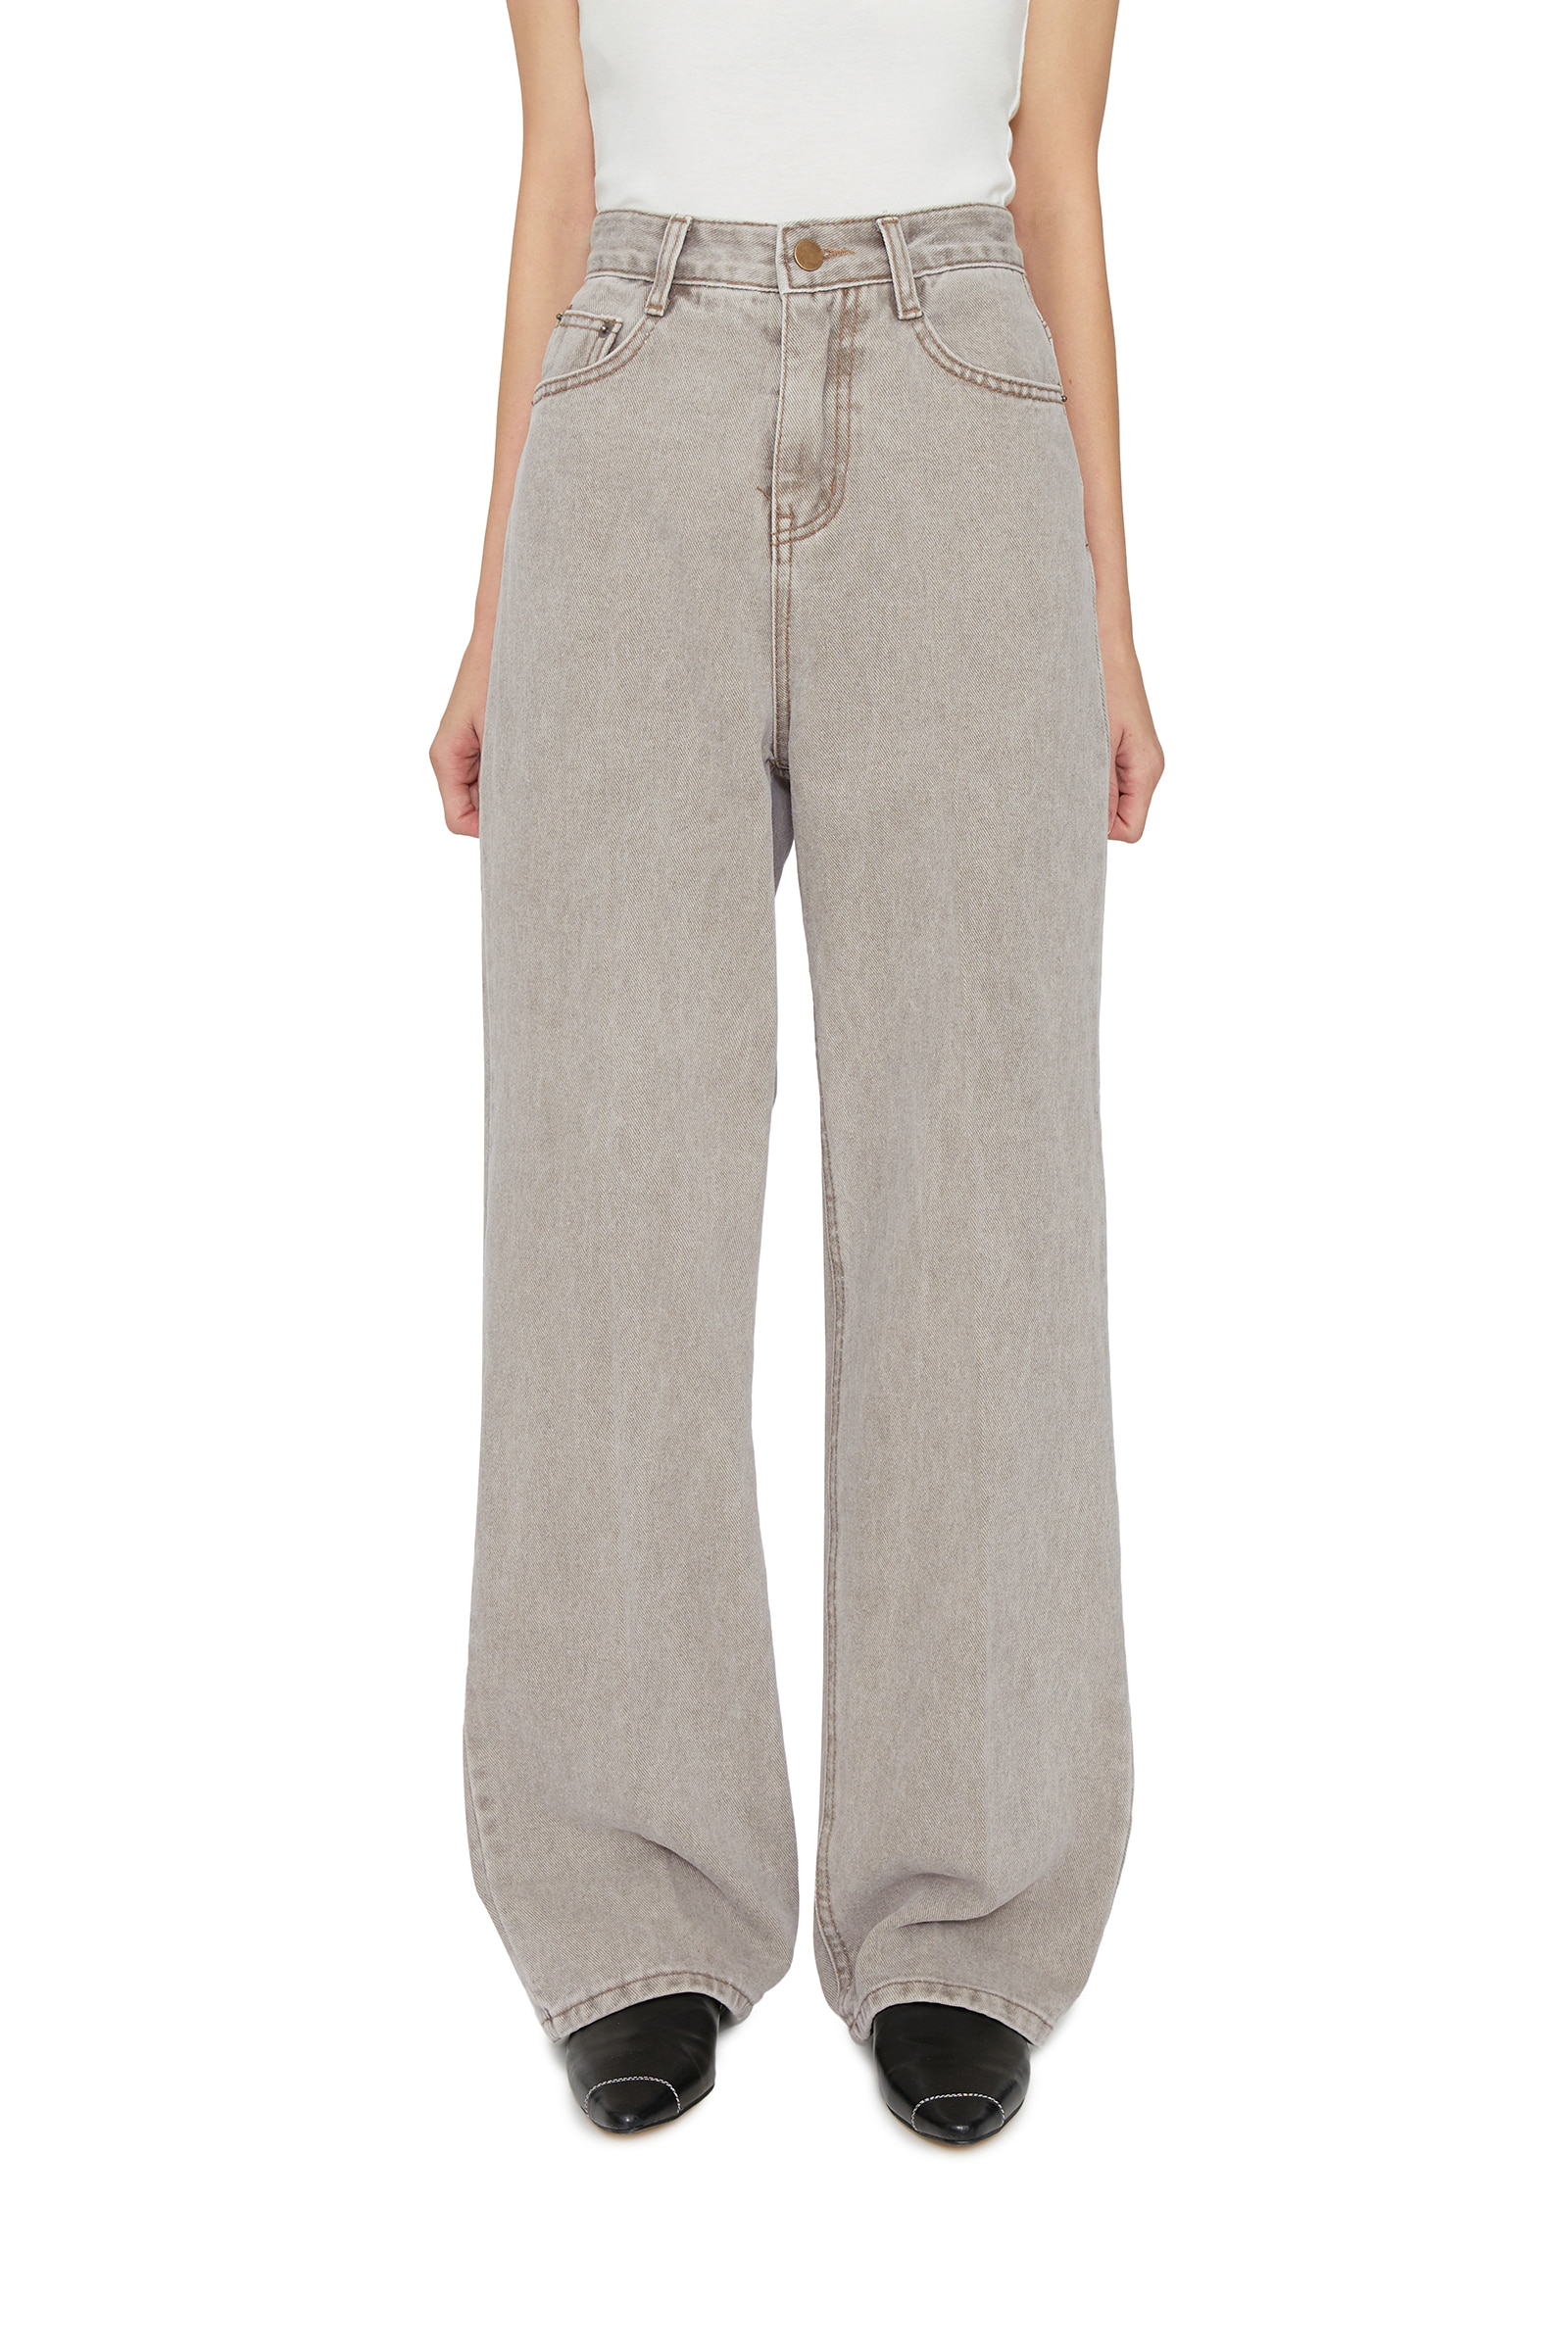 Smore gray straight jeans